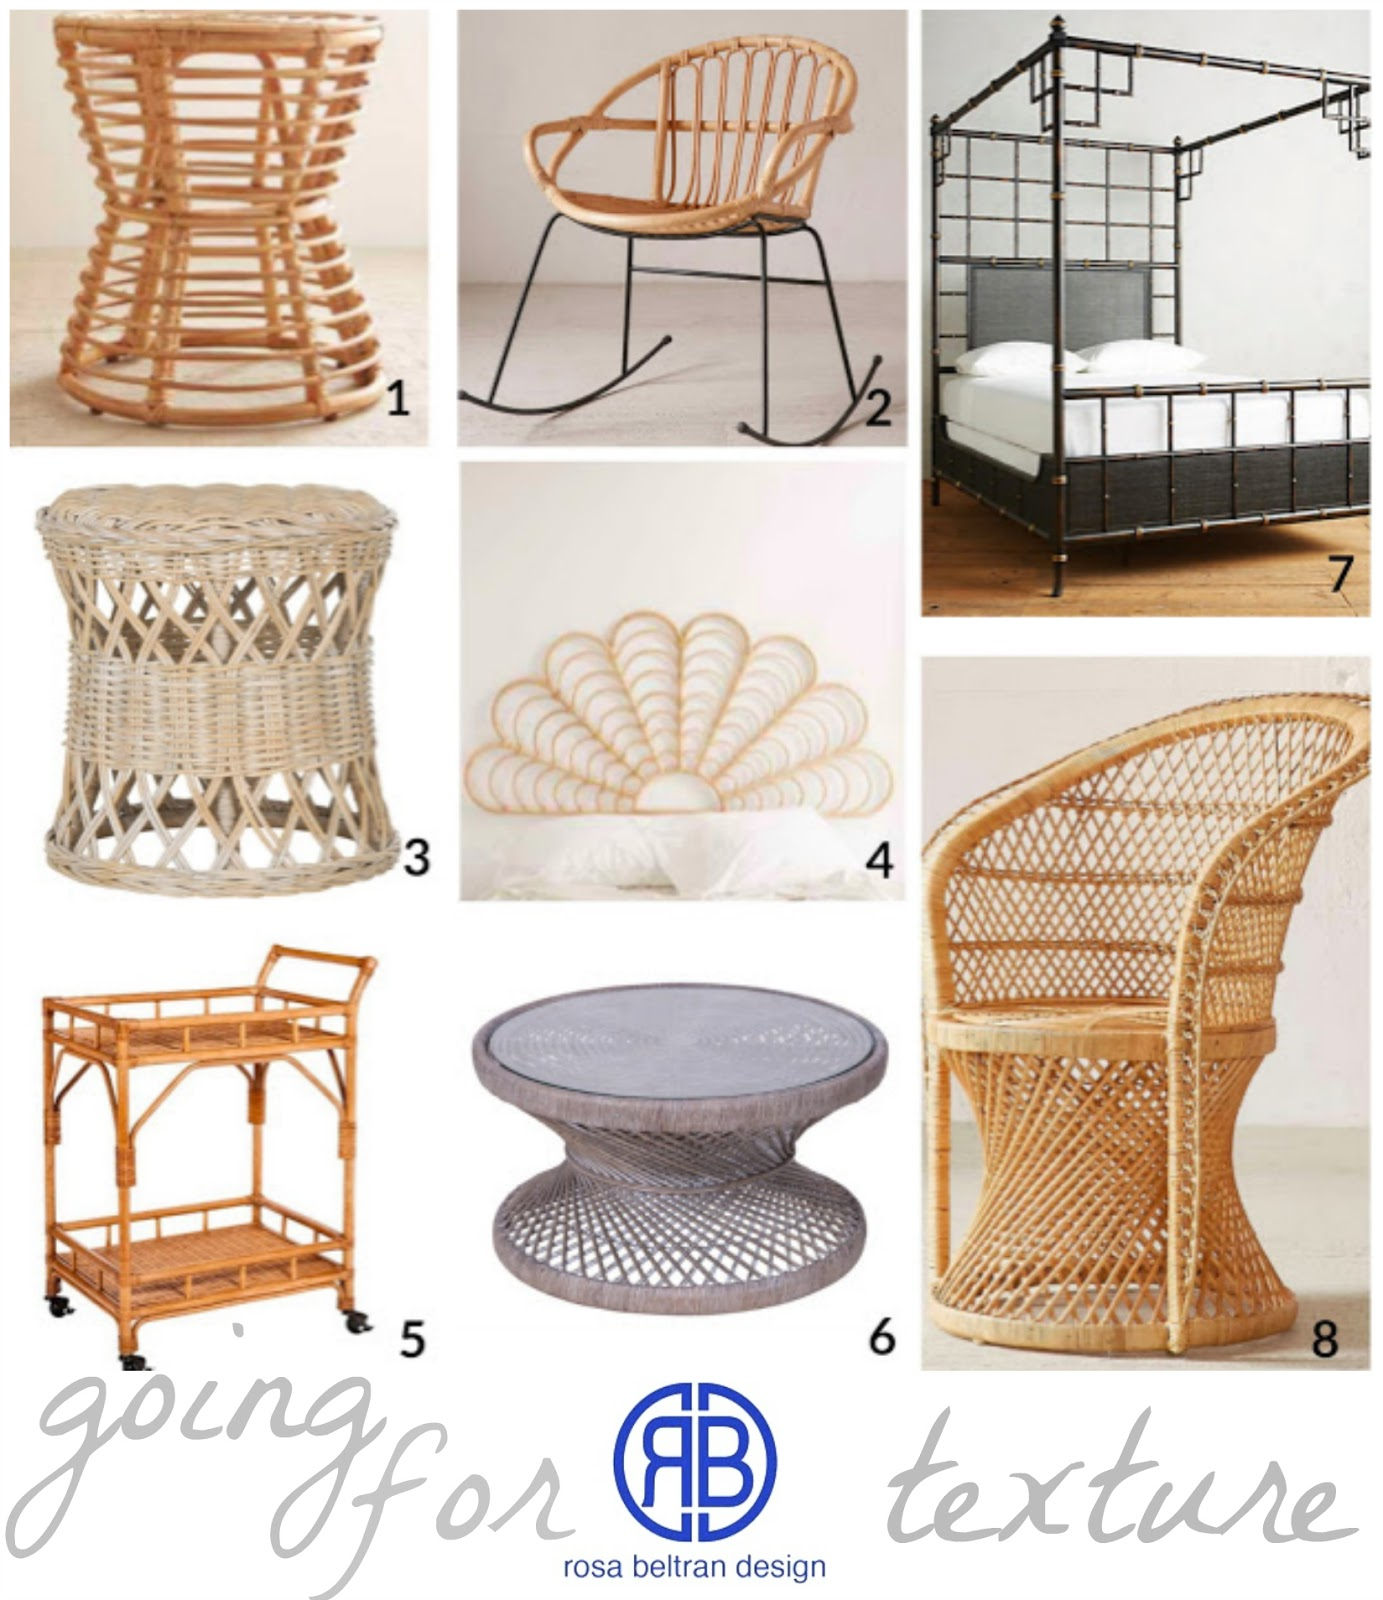 Rosa Beltran Design GOING FOR TEXTURE A ROUND UP OF RATTAN